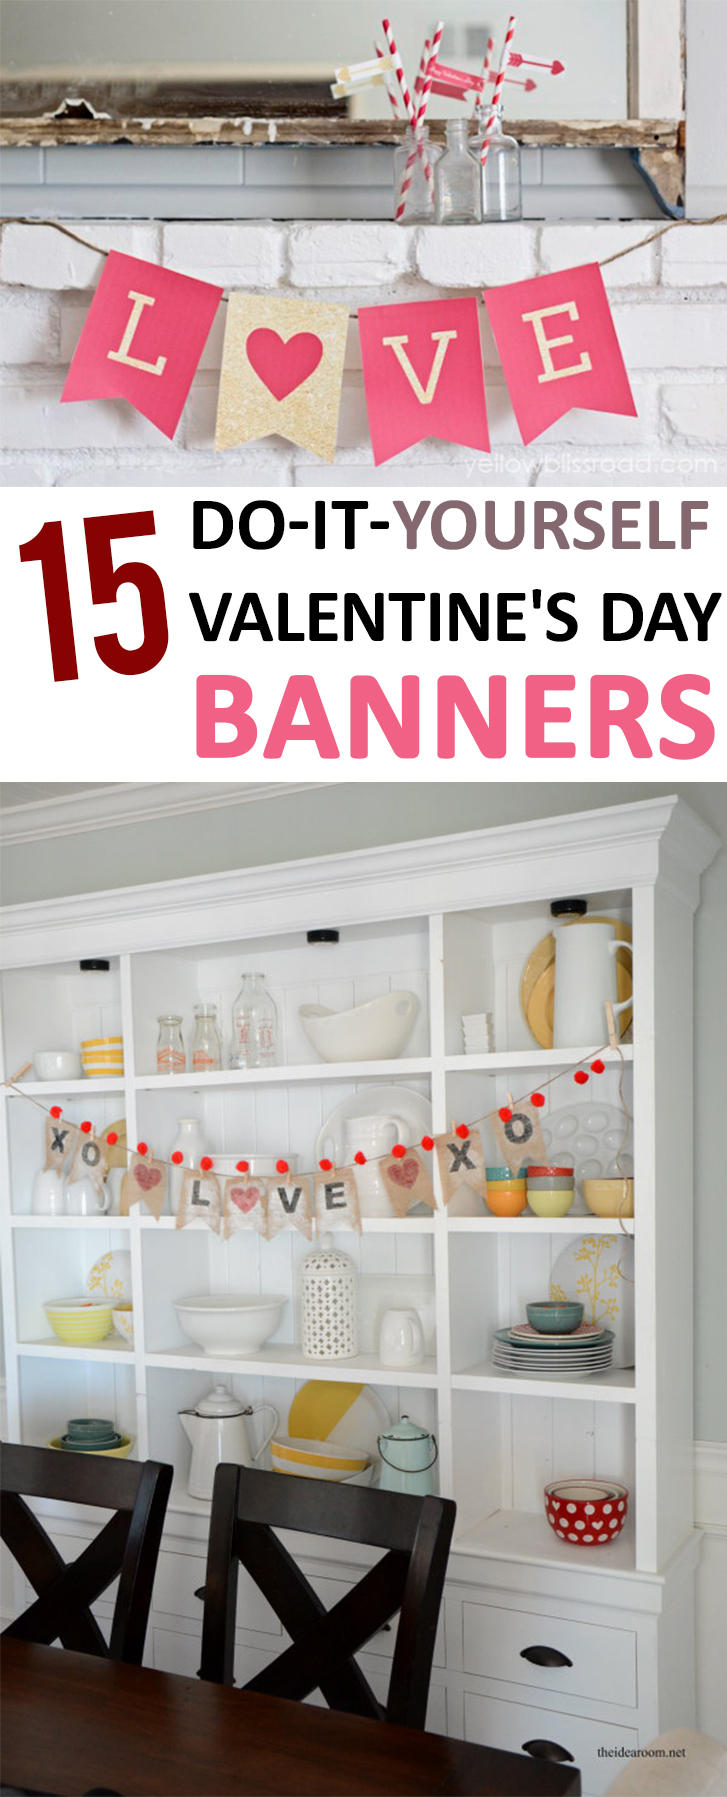 15 do it yourself valentines day banners valentines day homemade valentines day decorations valentines day diy holiday decor ideas solutioingenieria Gallery